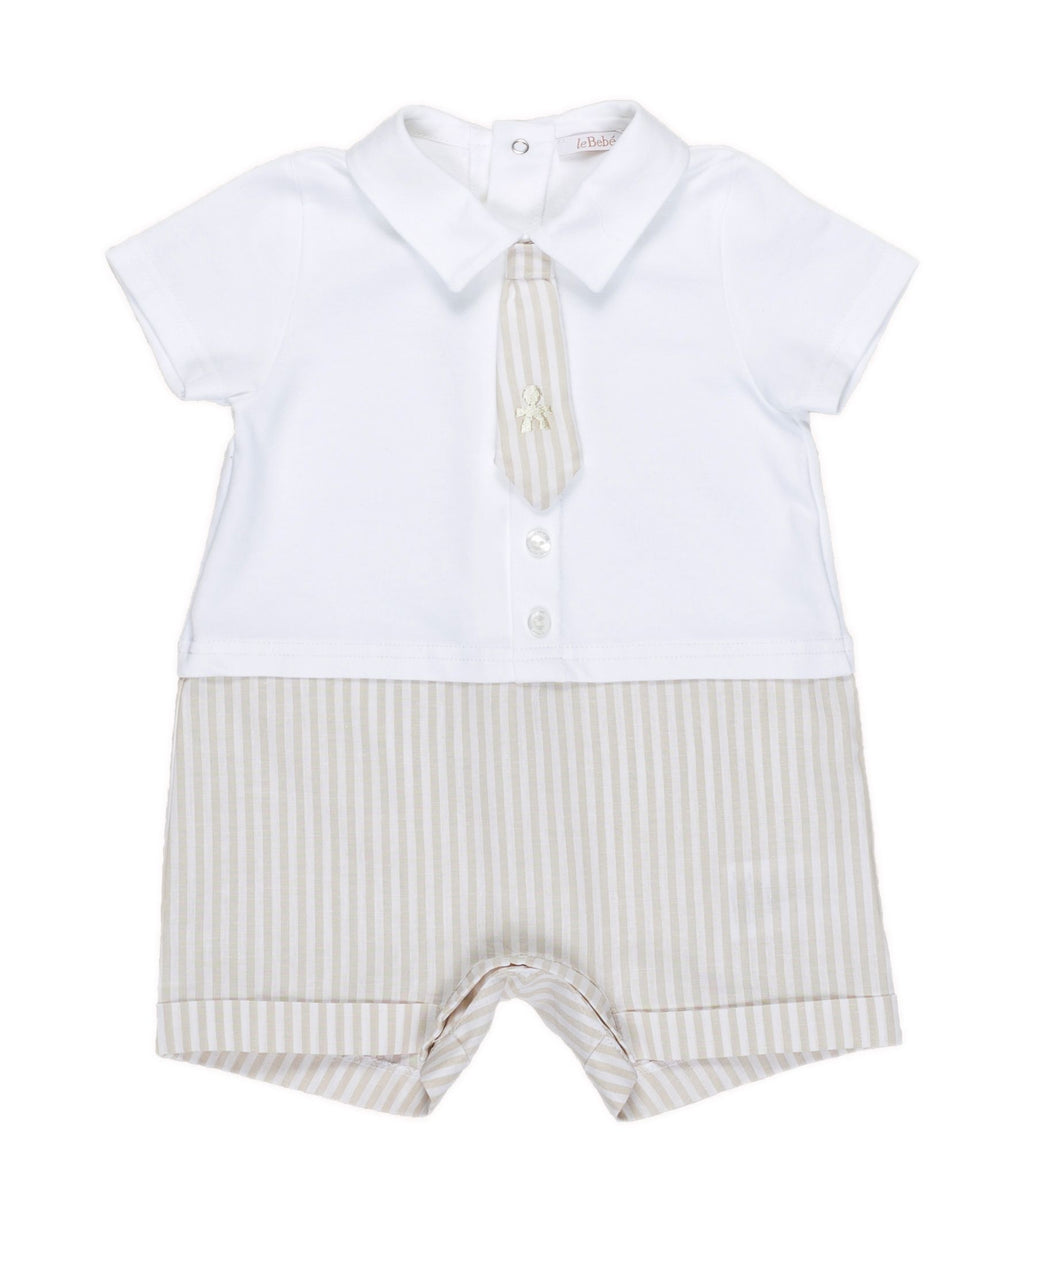 Pagliaccetto bimbo Le Bebé/ Rompers boy - HOPLA' PARMA Baby Collections